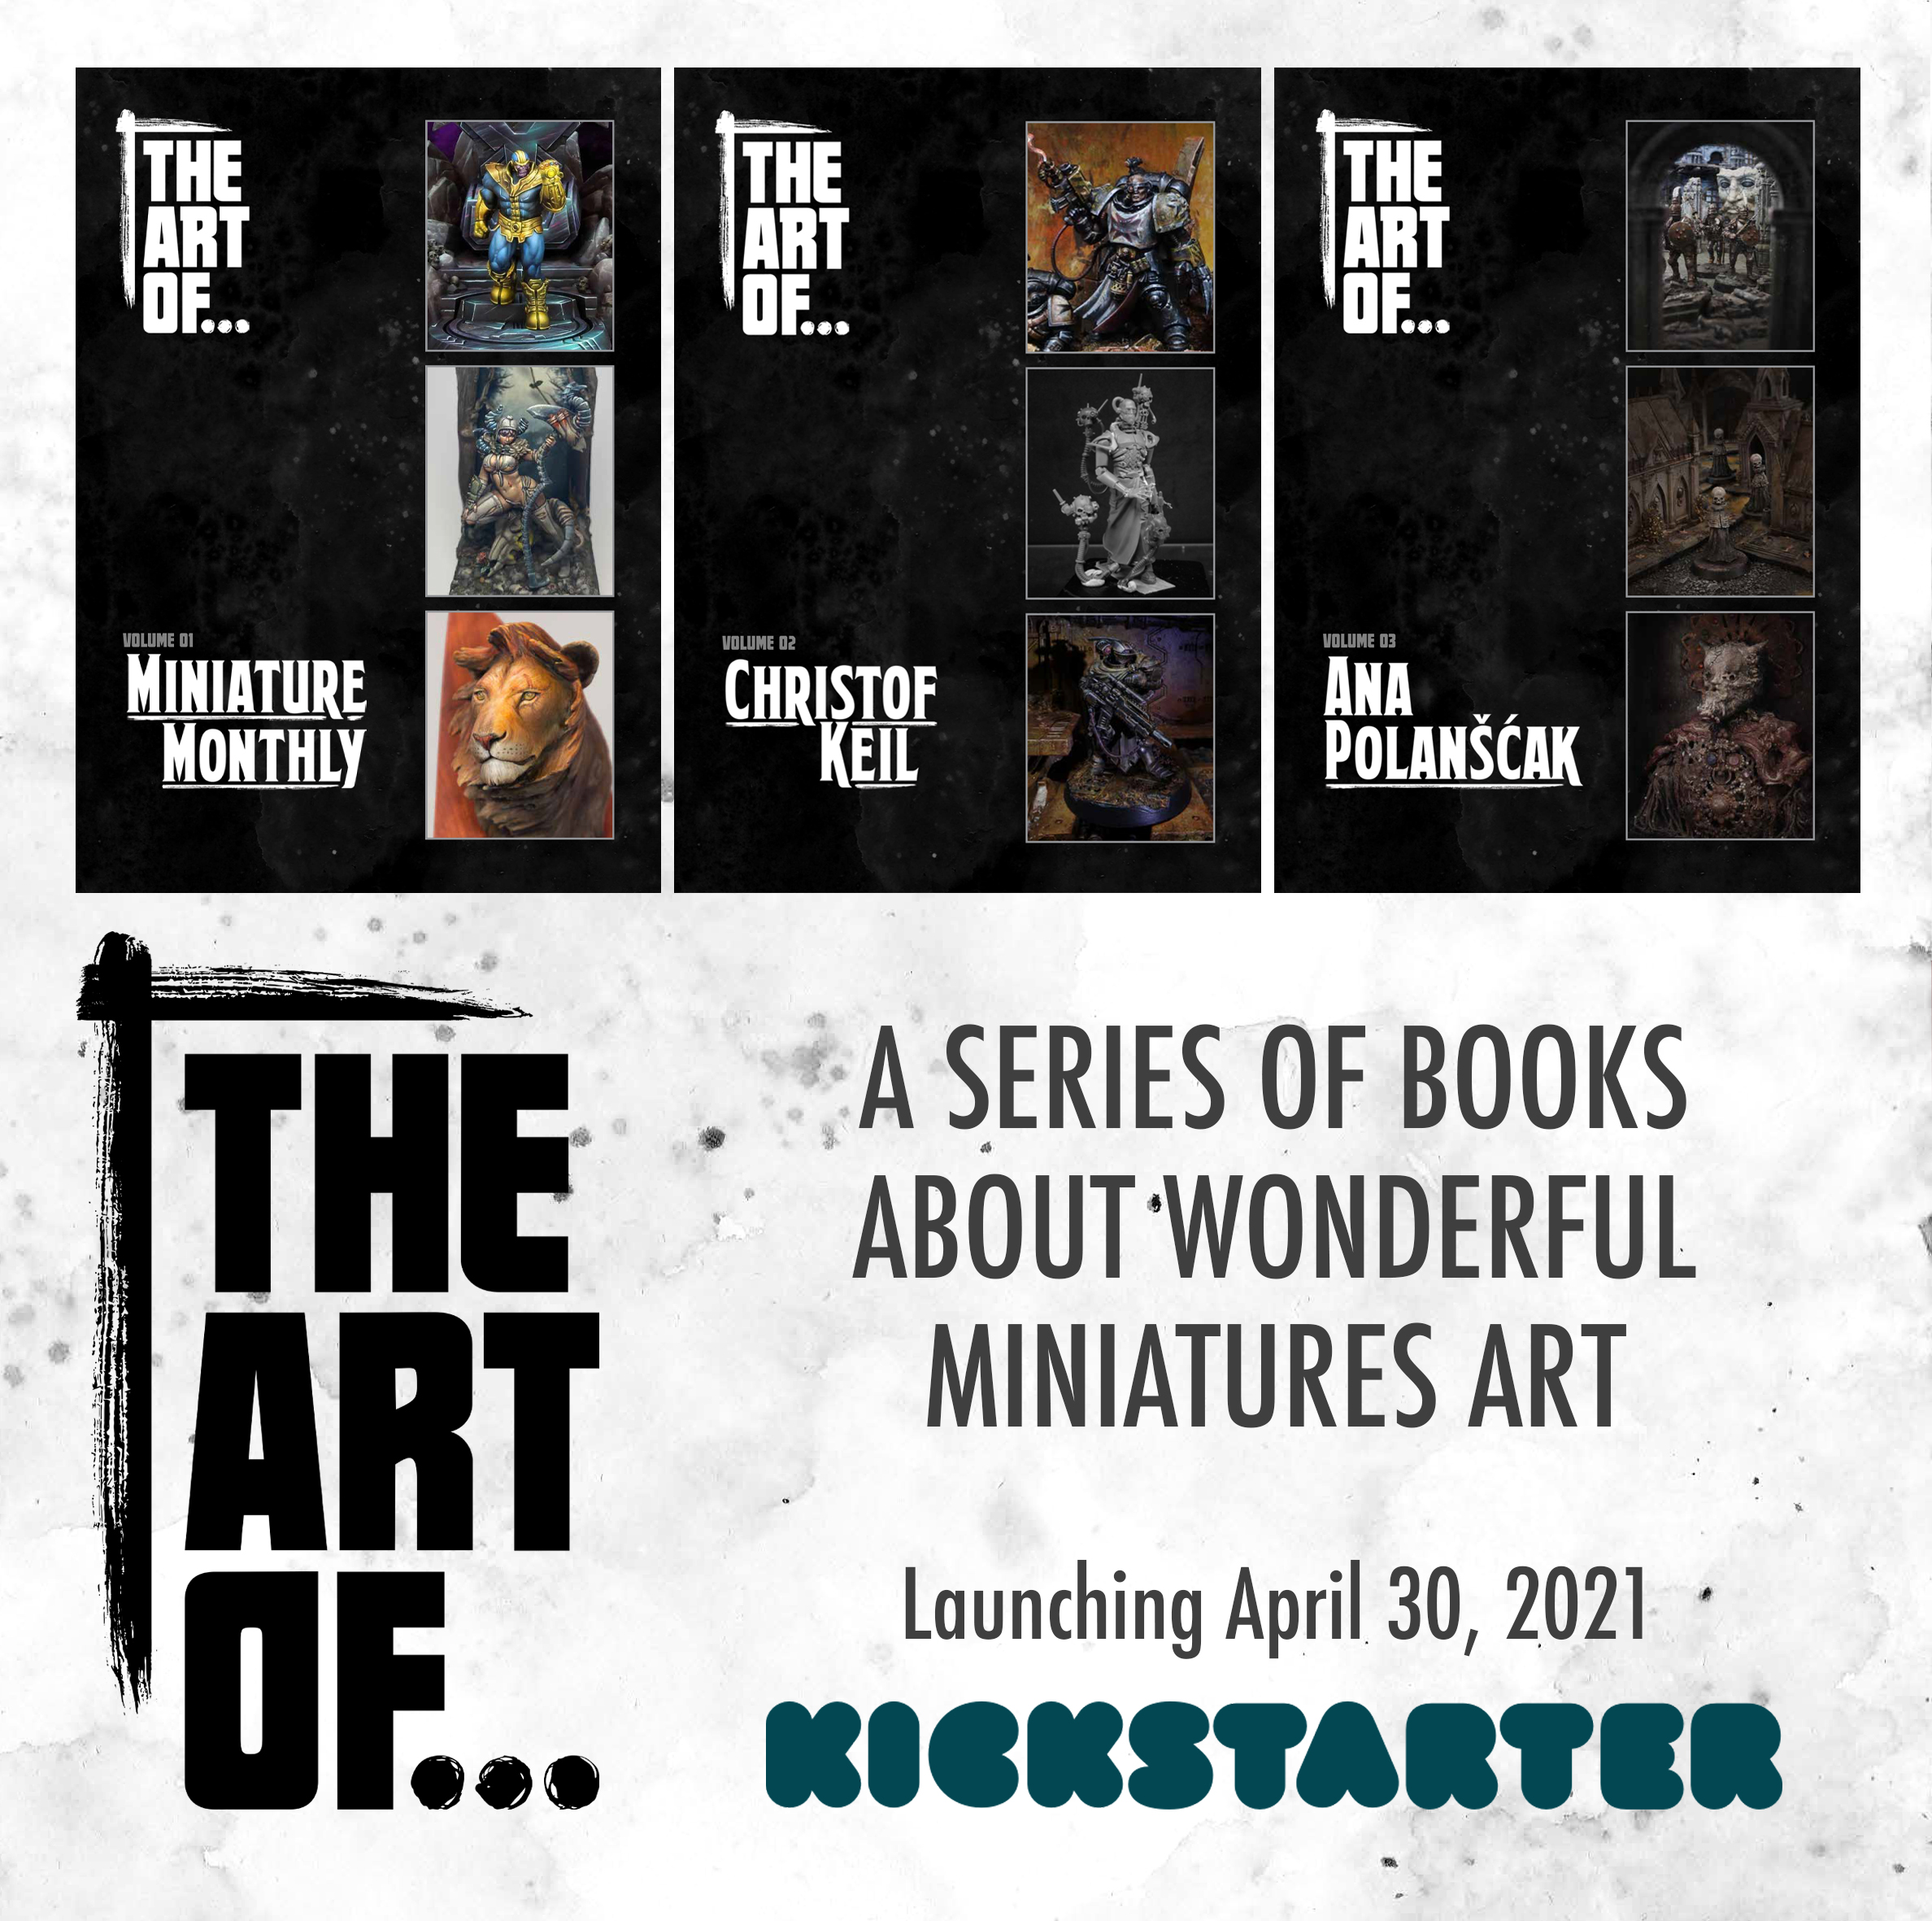 The Art Of Kickstarter